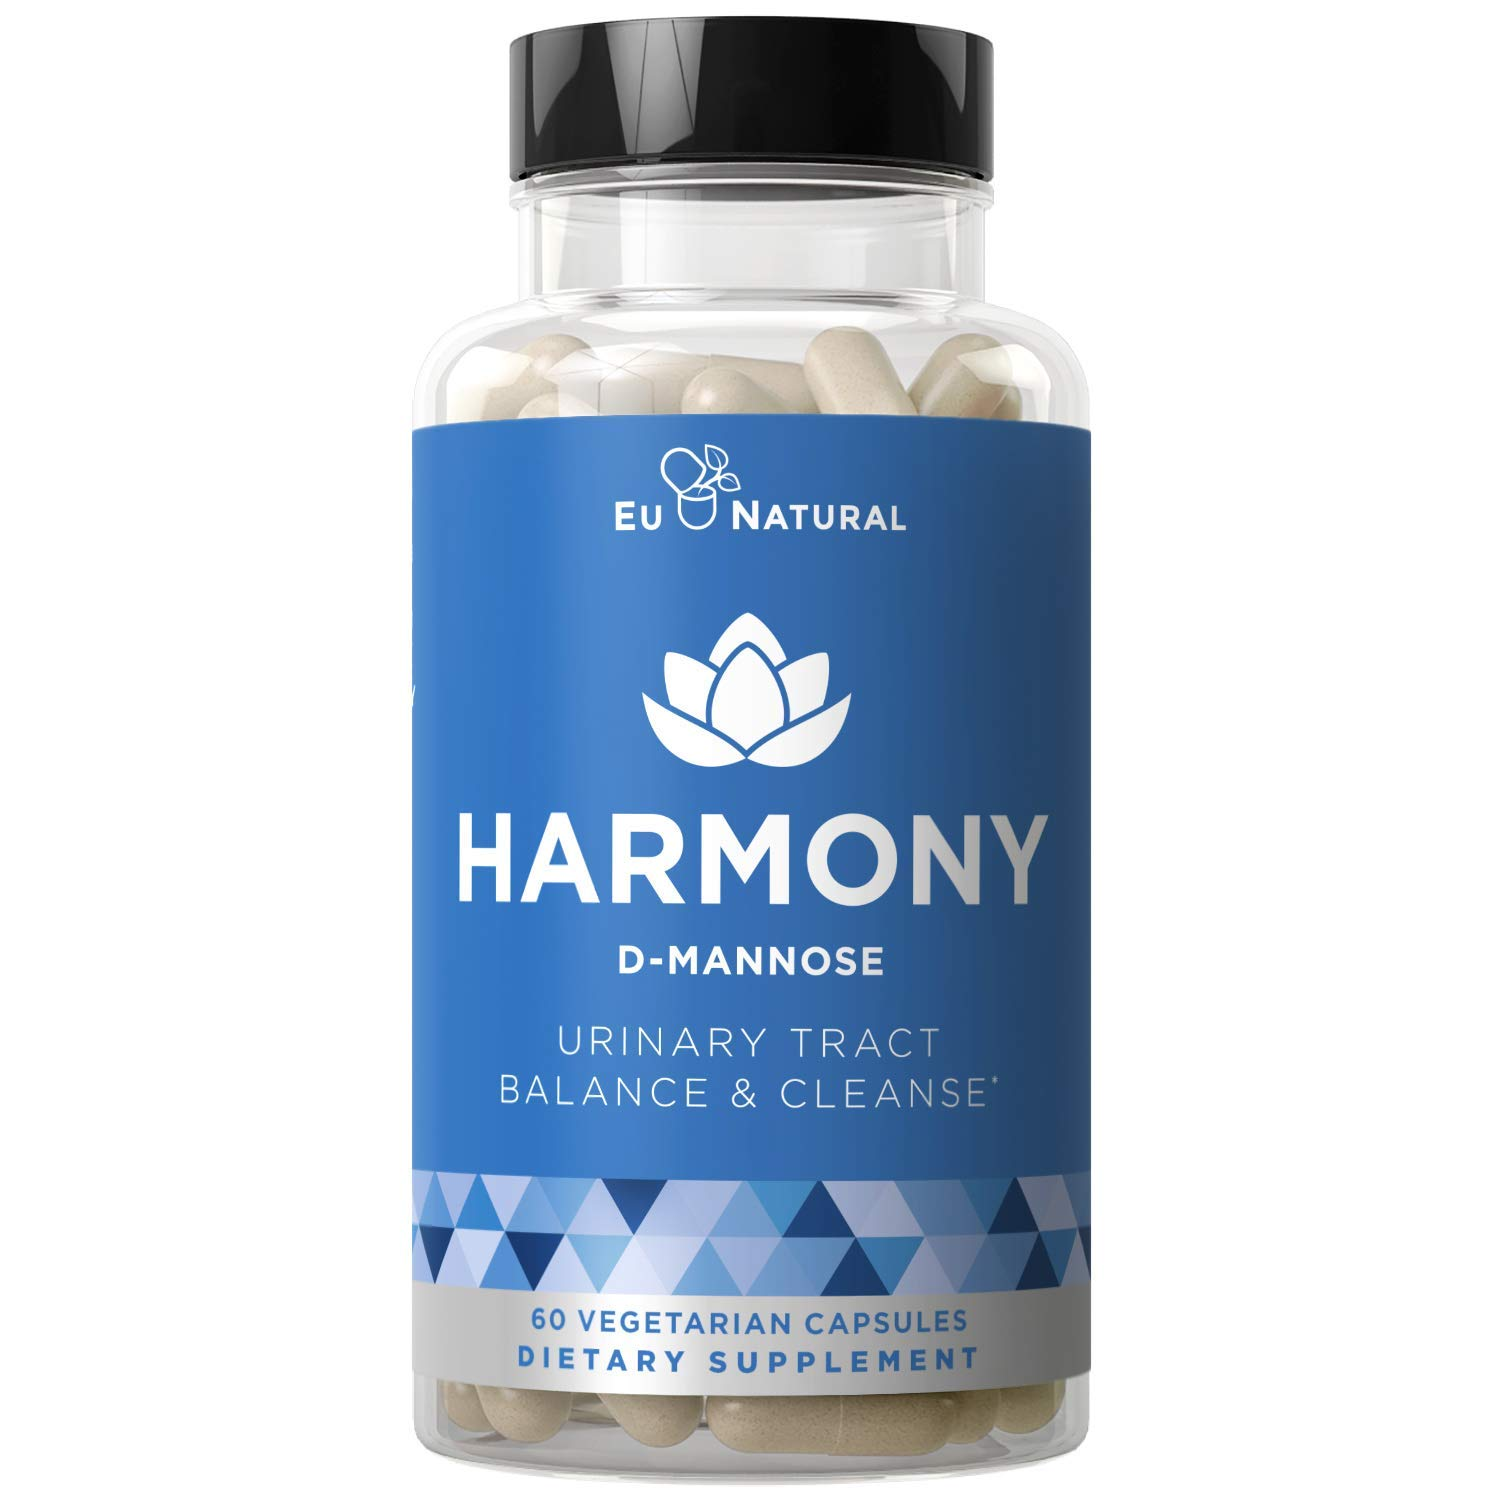 2. Harmony D-Mannose